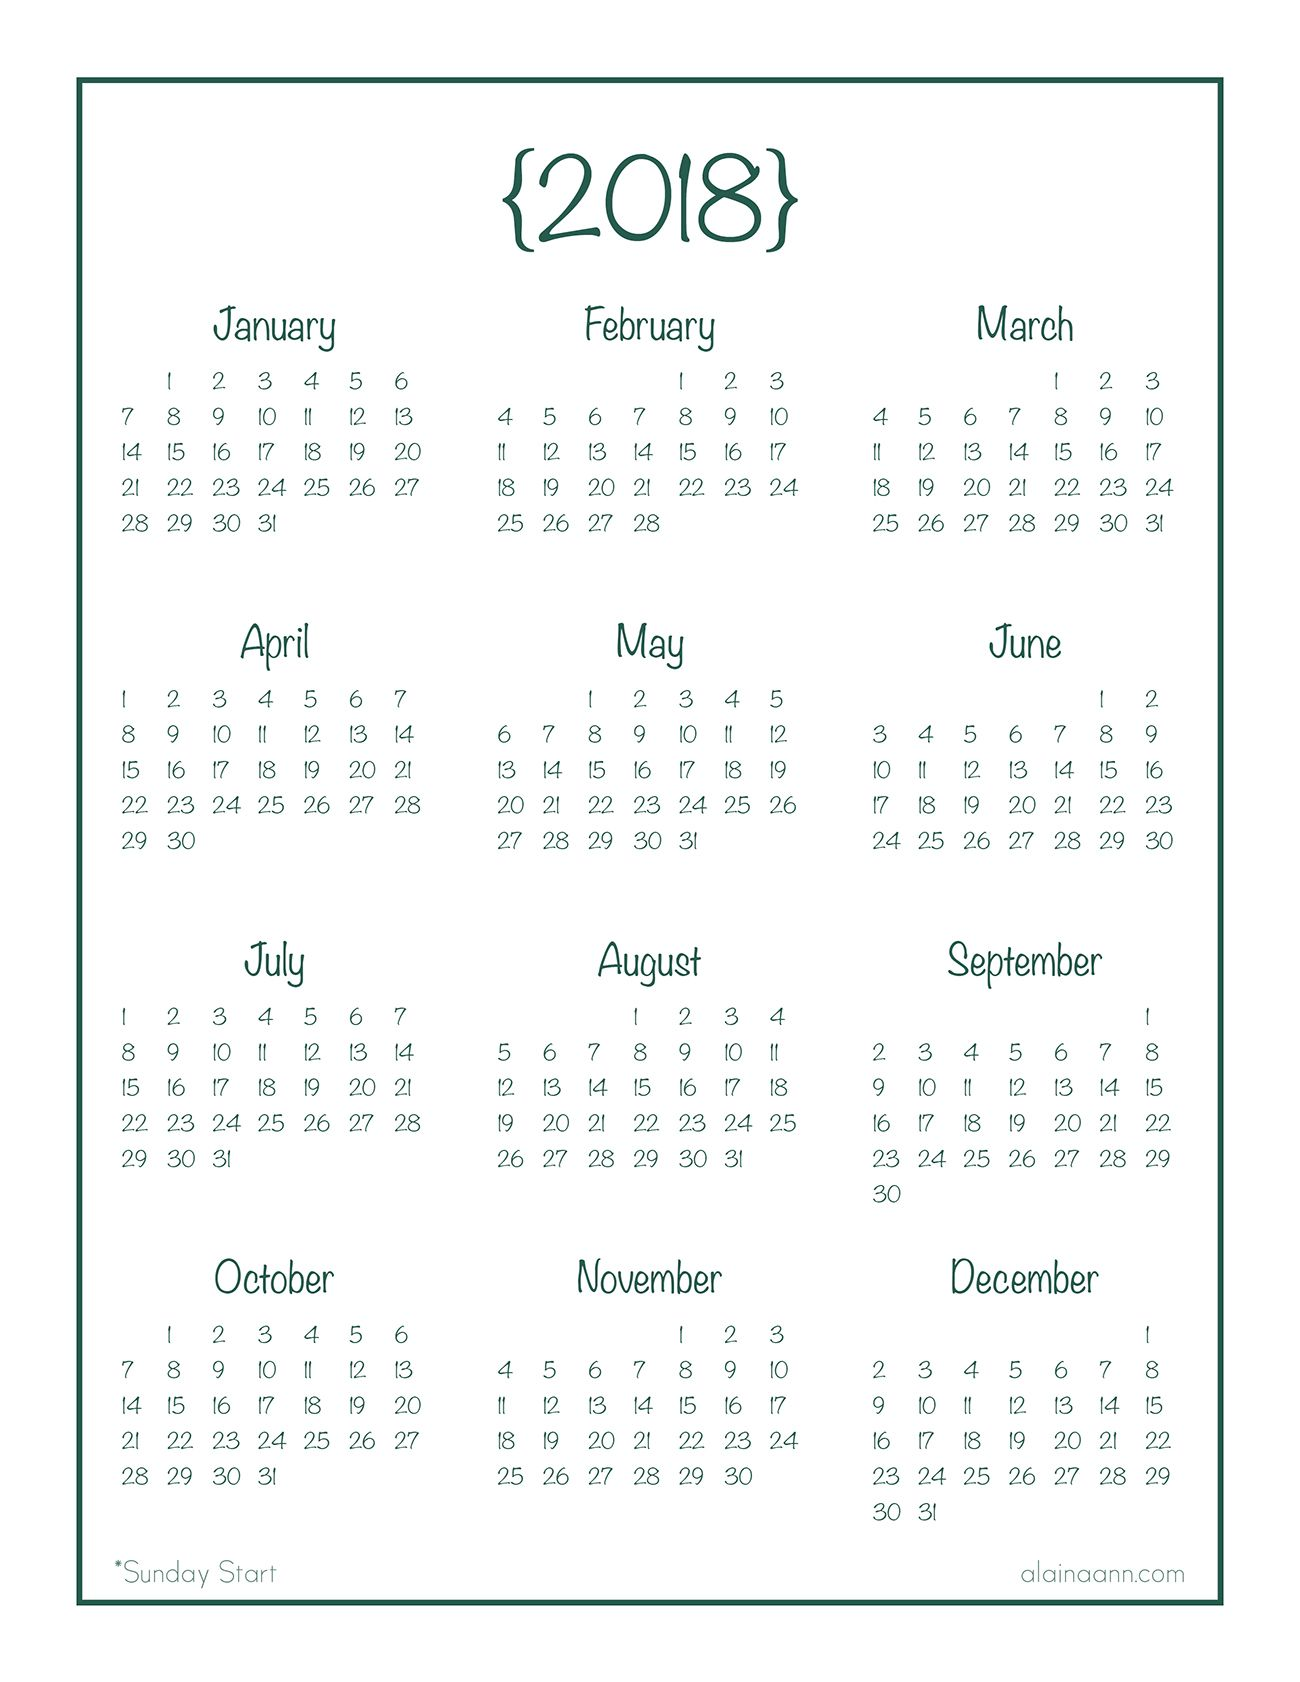 2018 Year at a Glance Calendar Free Printable | Planner/Journal